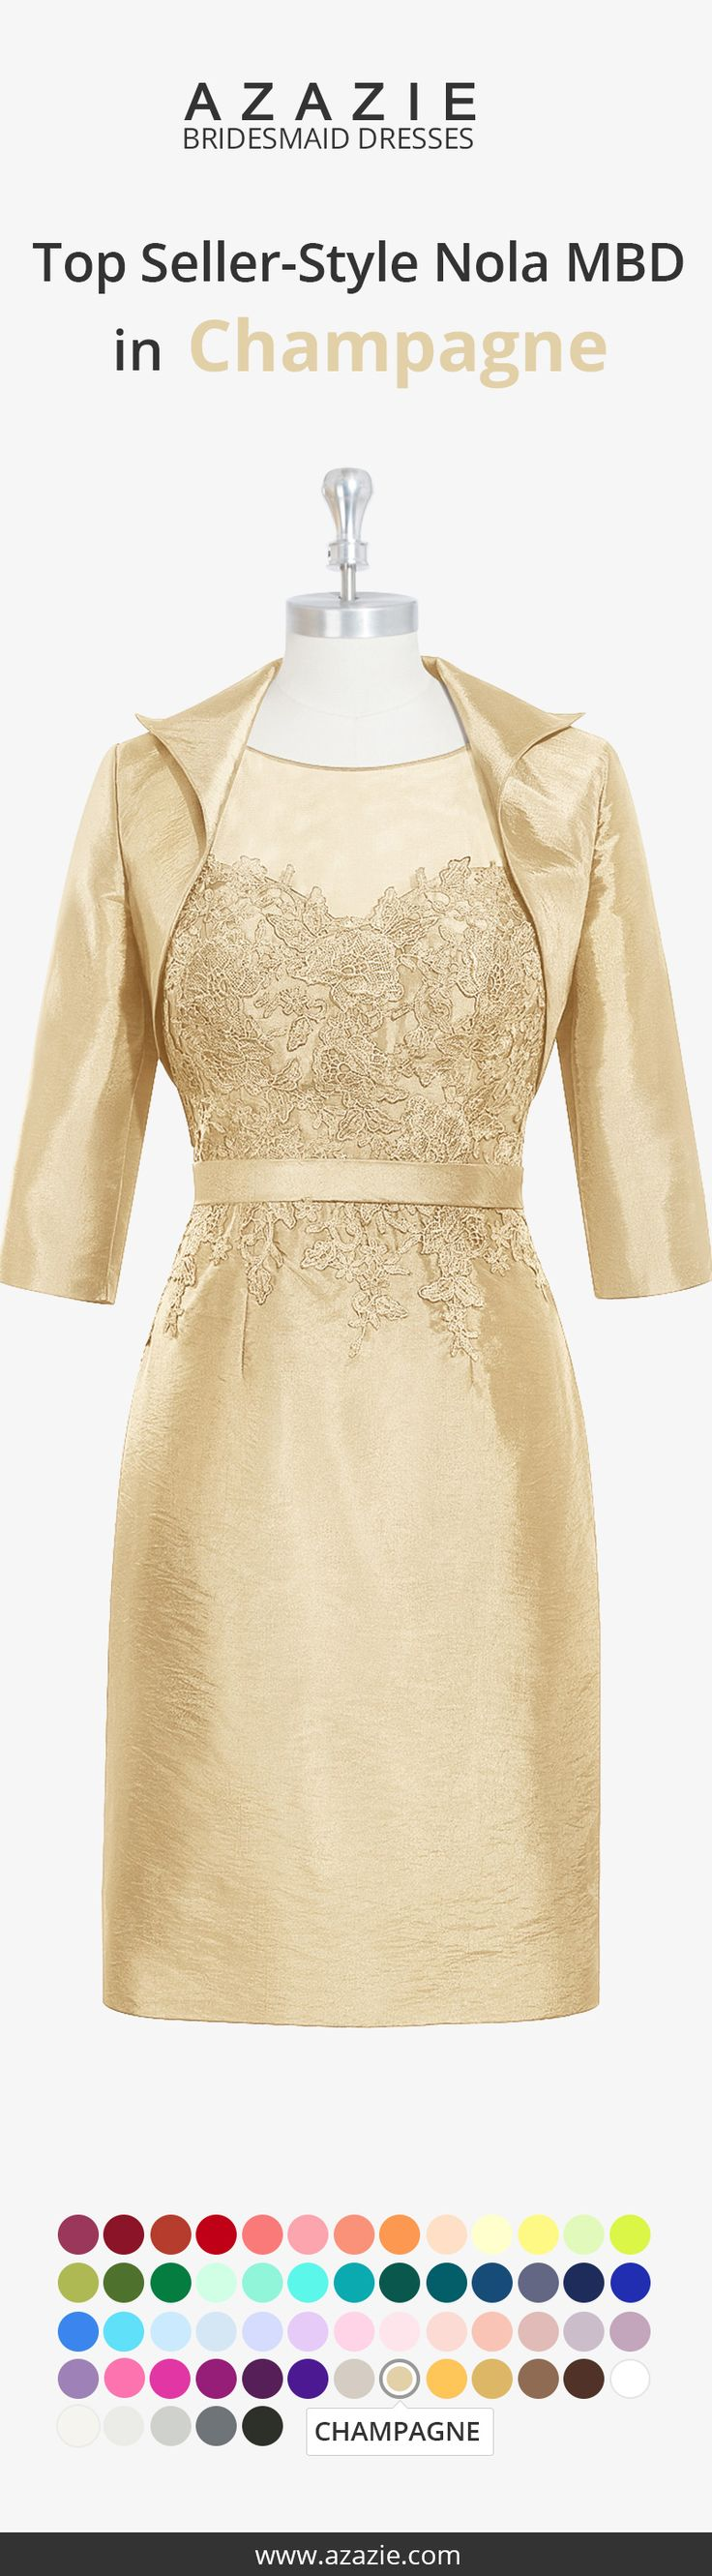 670c59e1bb040 Nola MBD is a knee-length dress in a sheath style. It features an